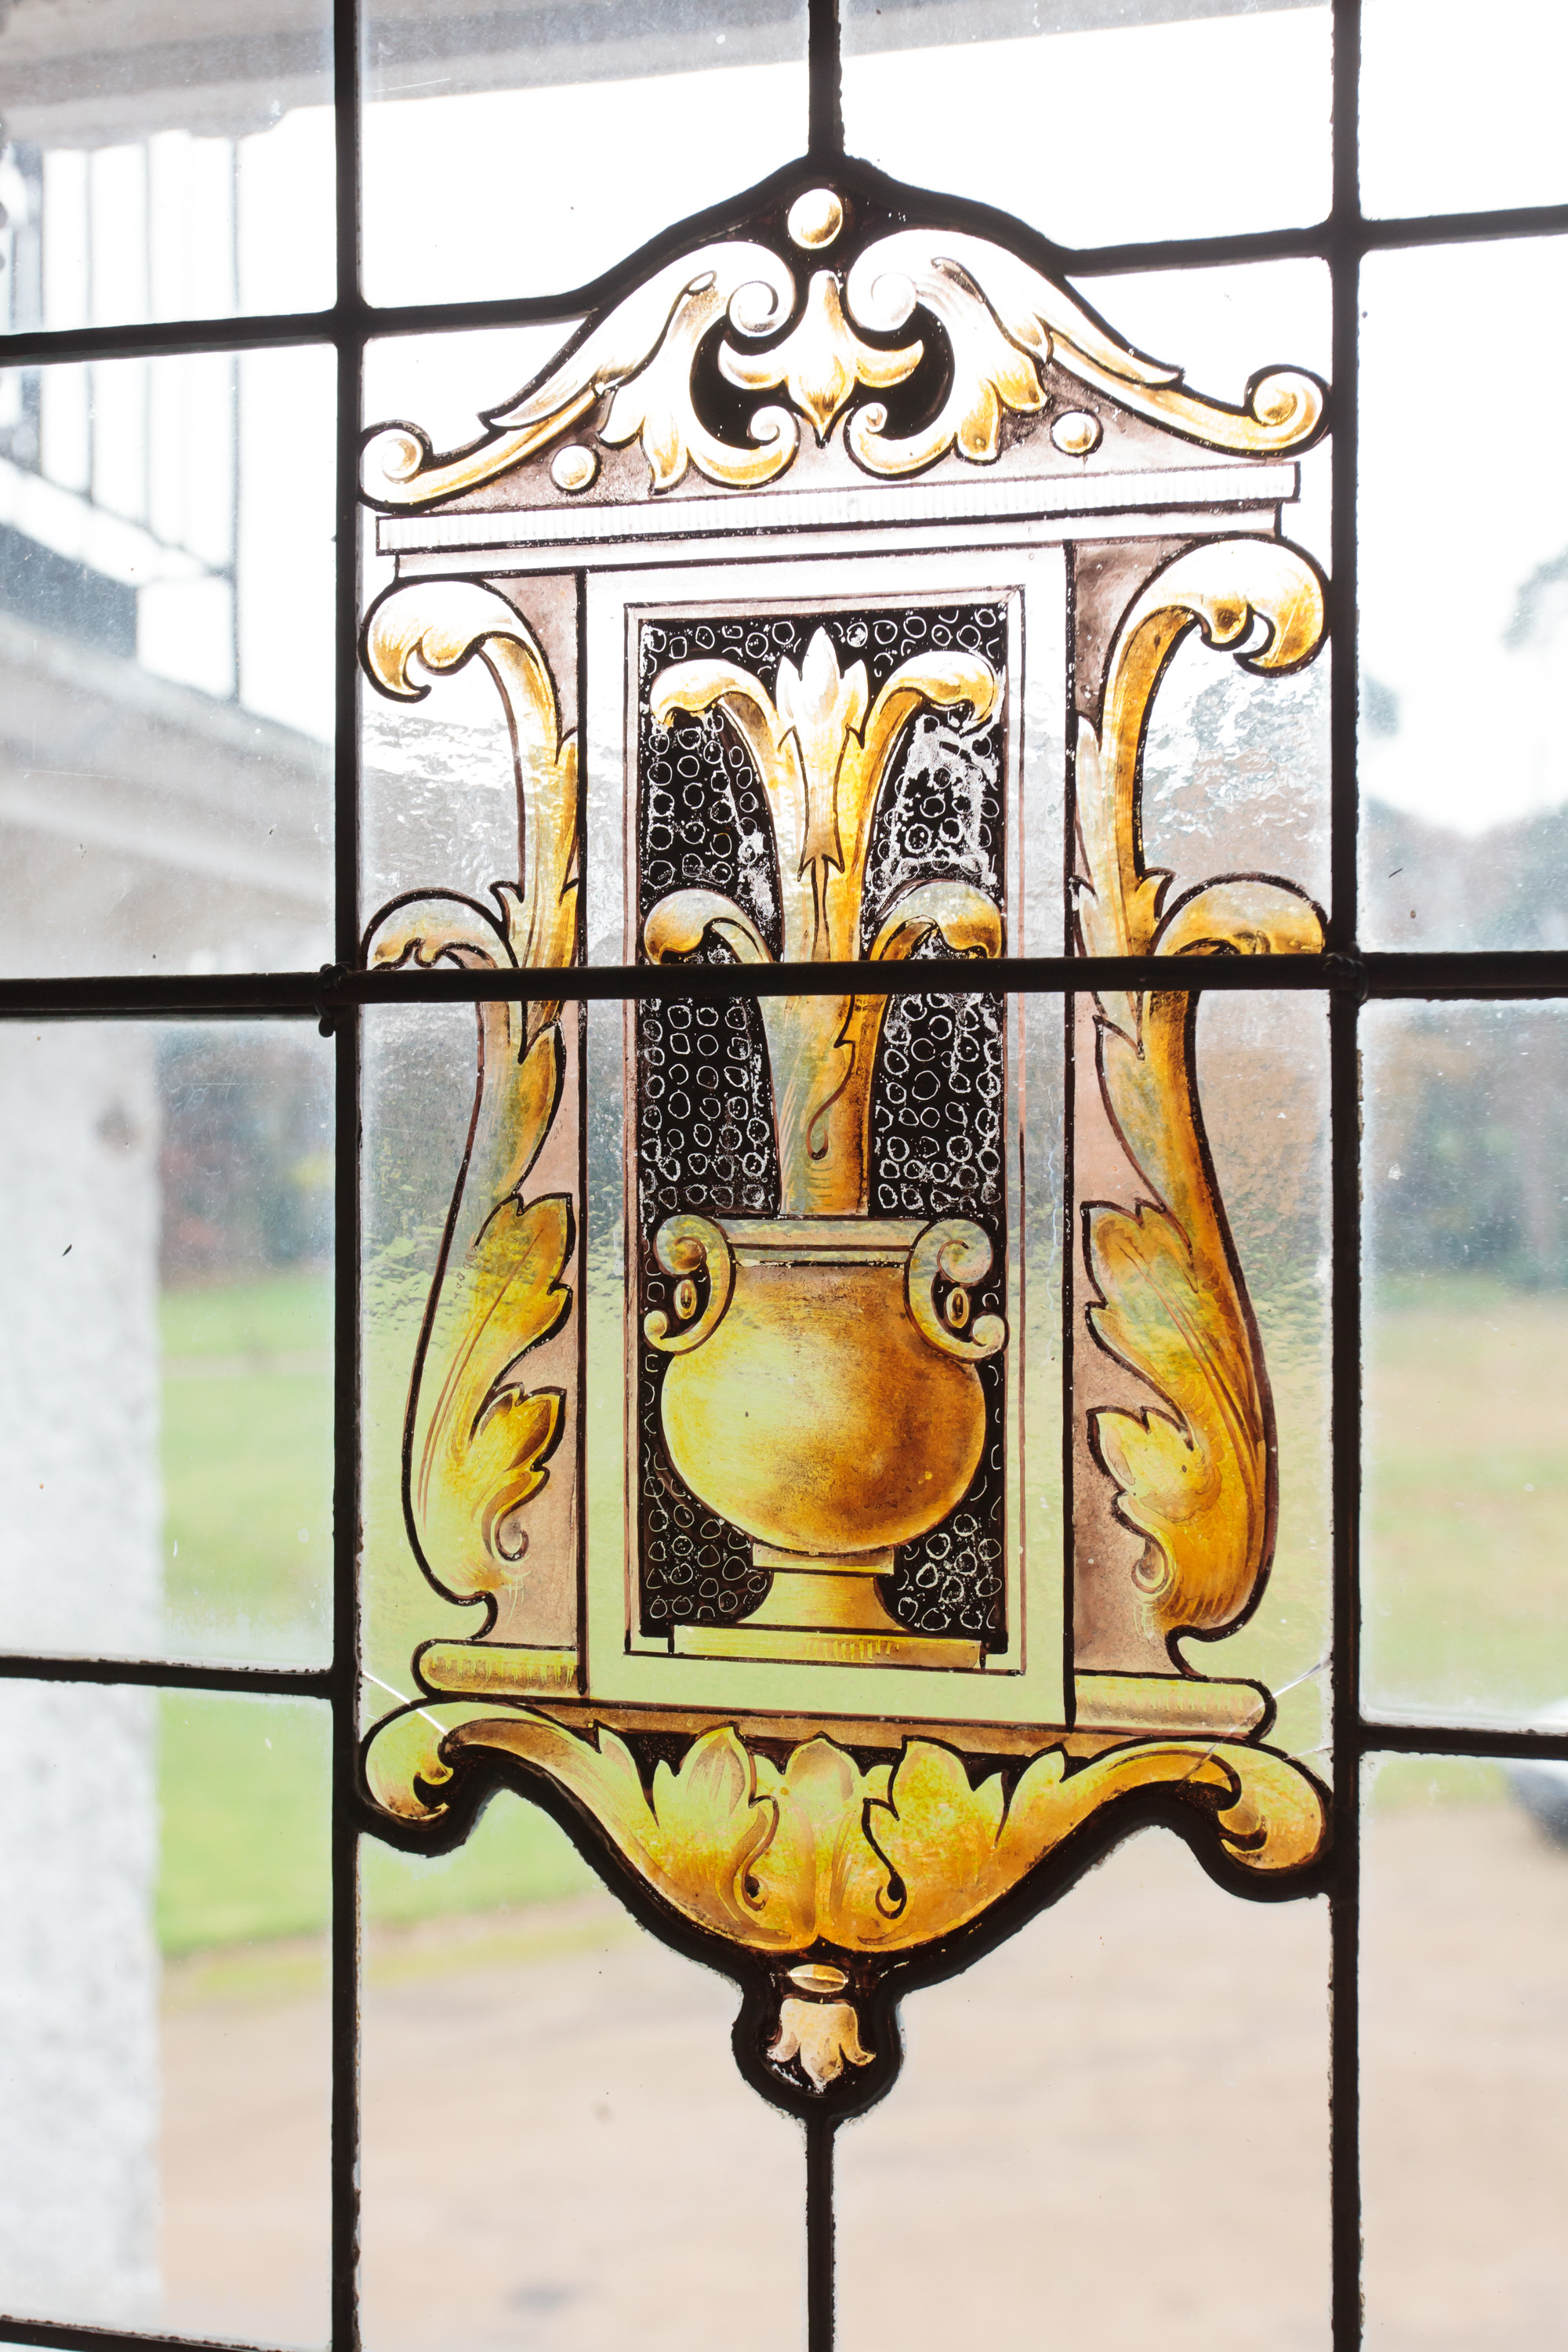 stained glass at Merrieweathers Country House